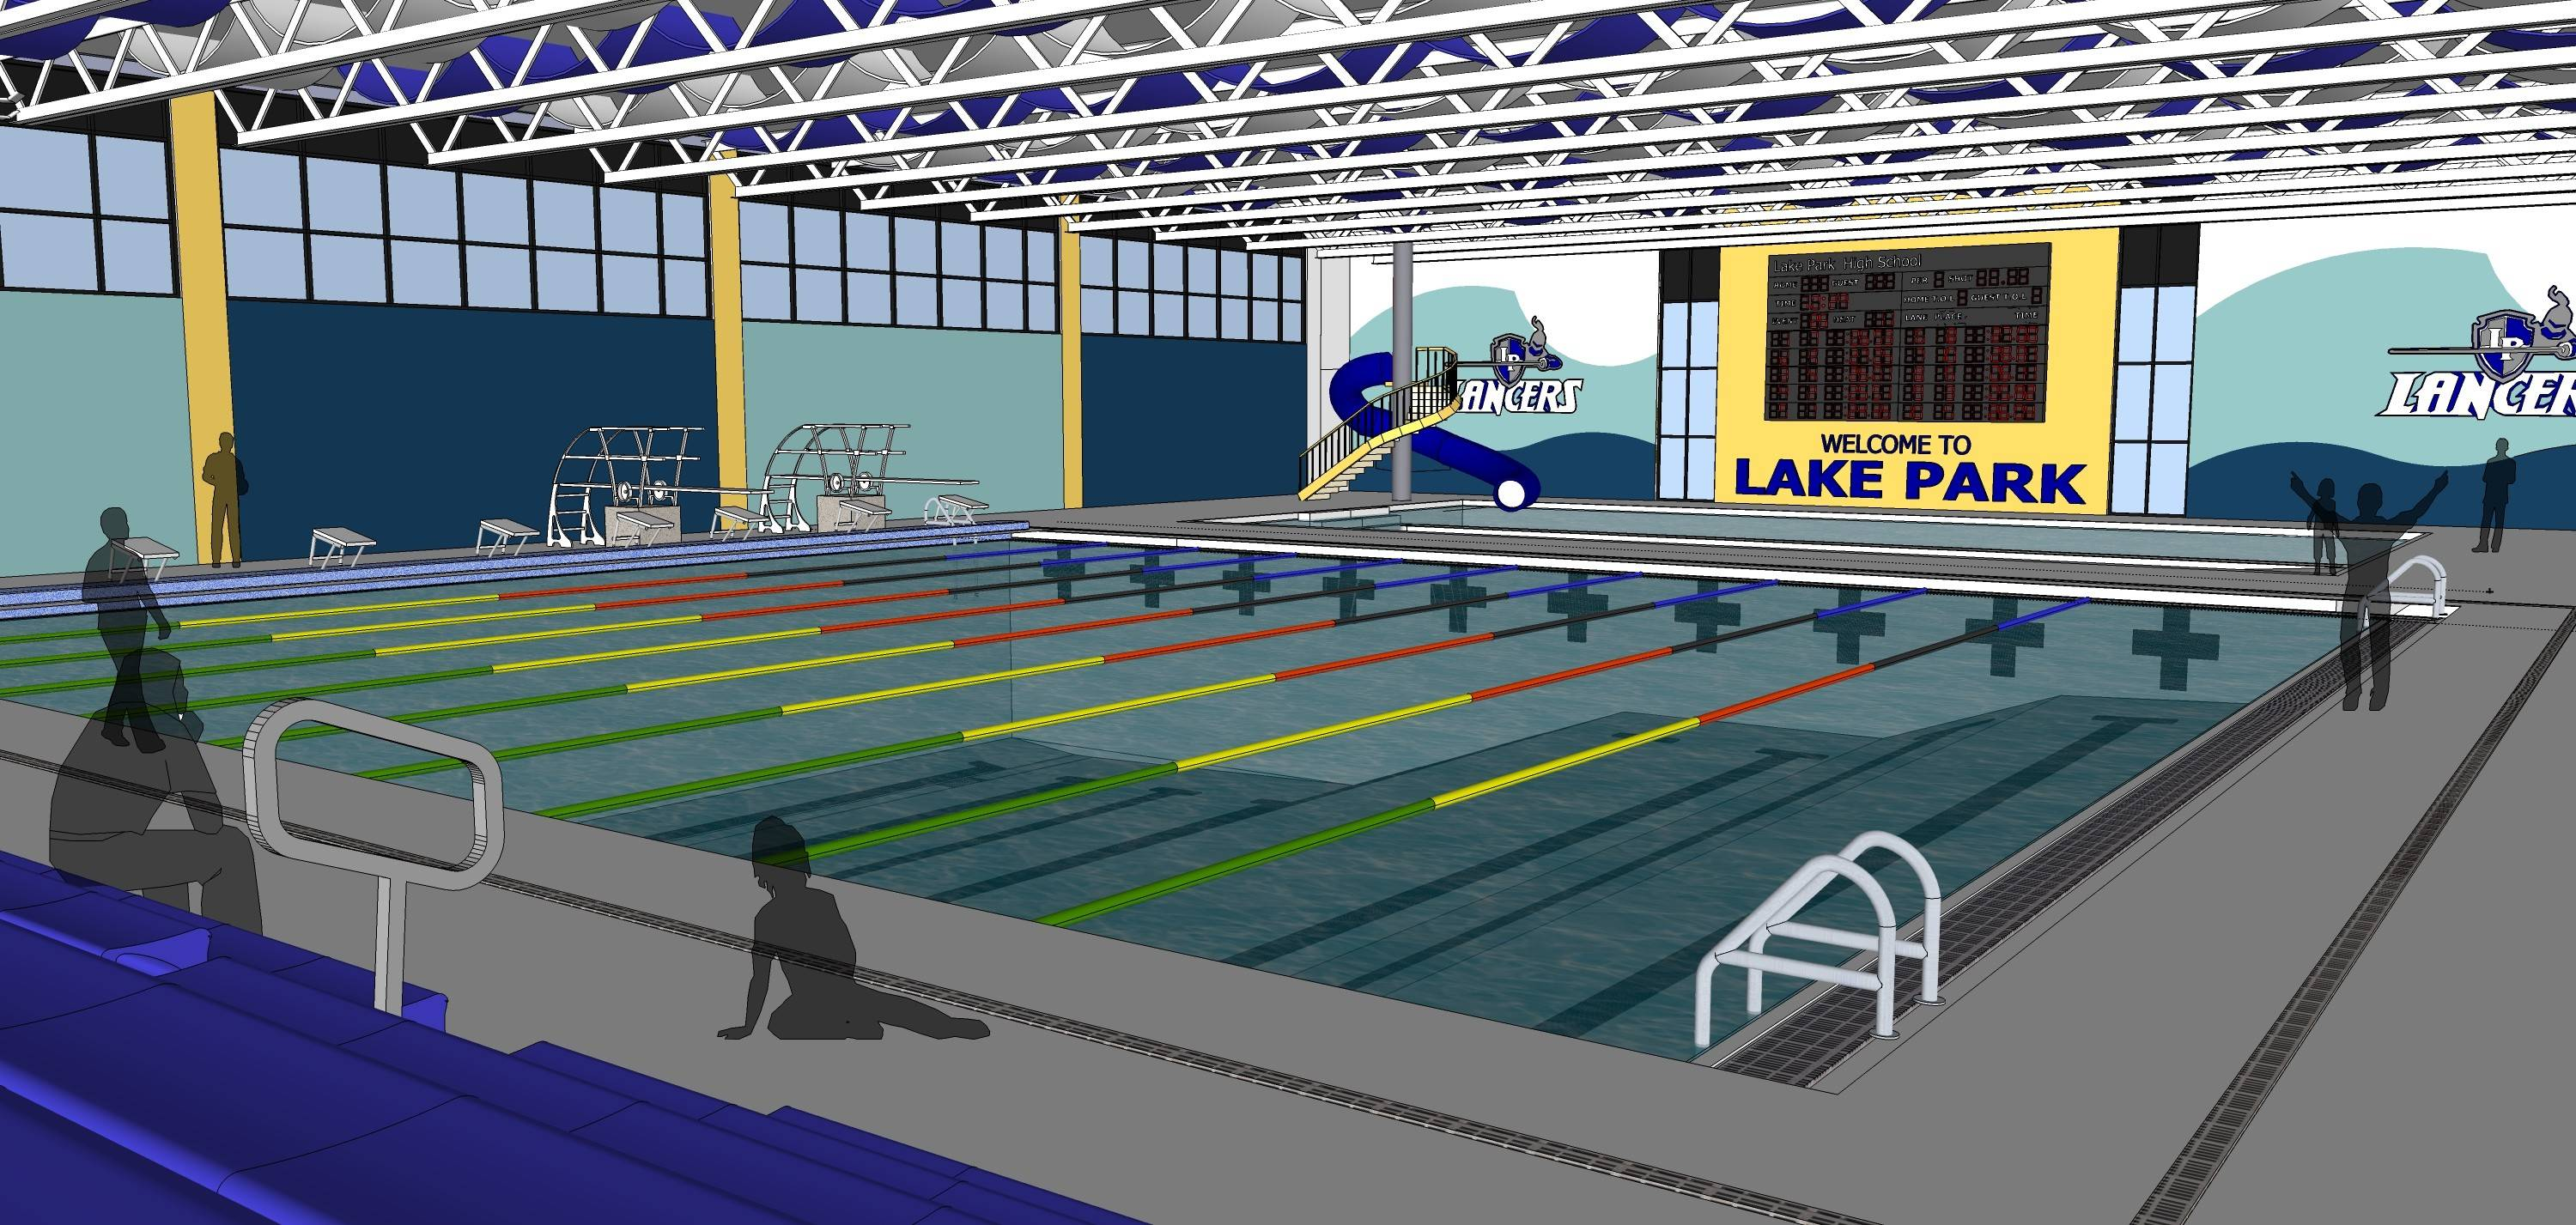 Lake Park High School District 108 is asking voters to fund the construction and operation of an aquatic facility that could be built at the school's east campus by fall 2015.